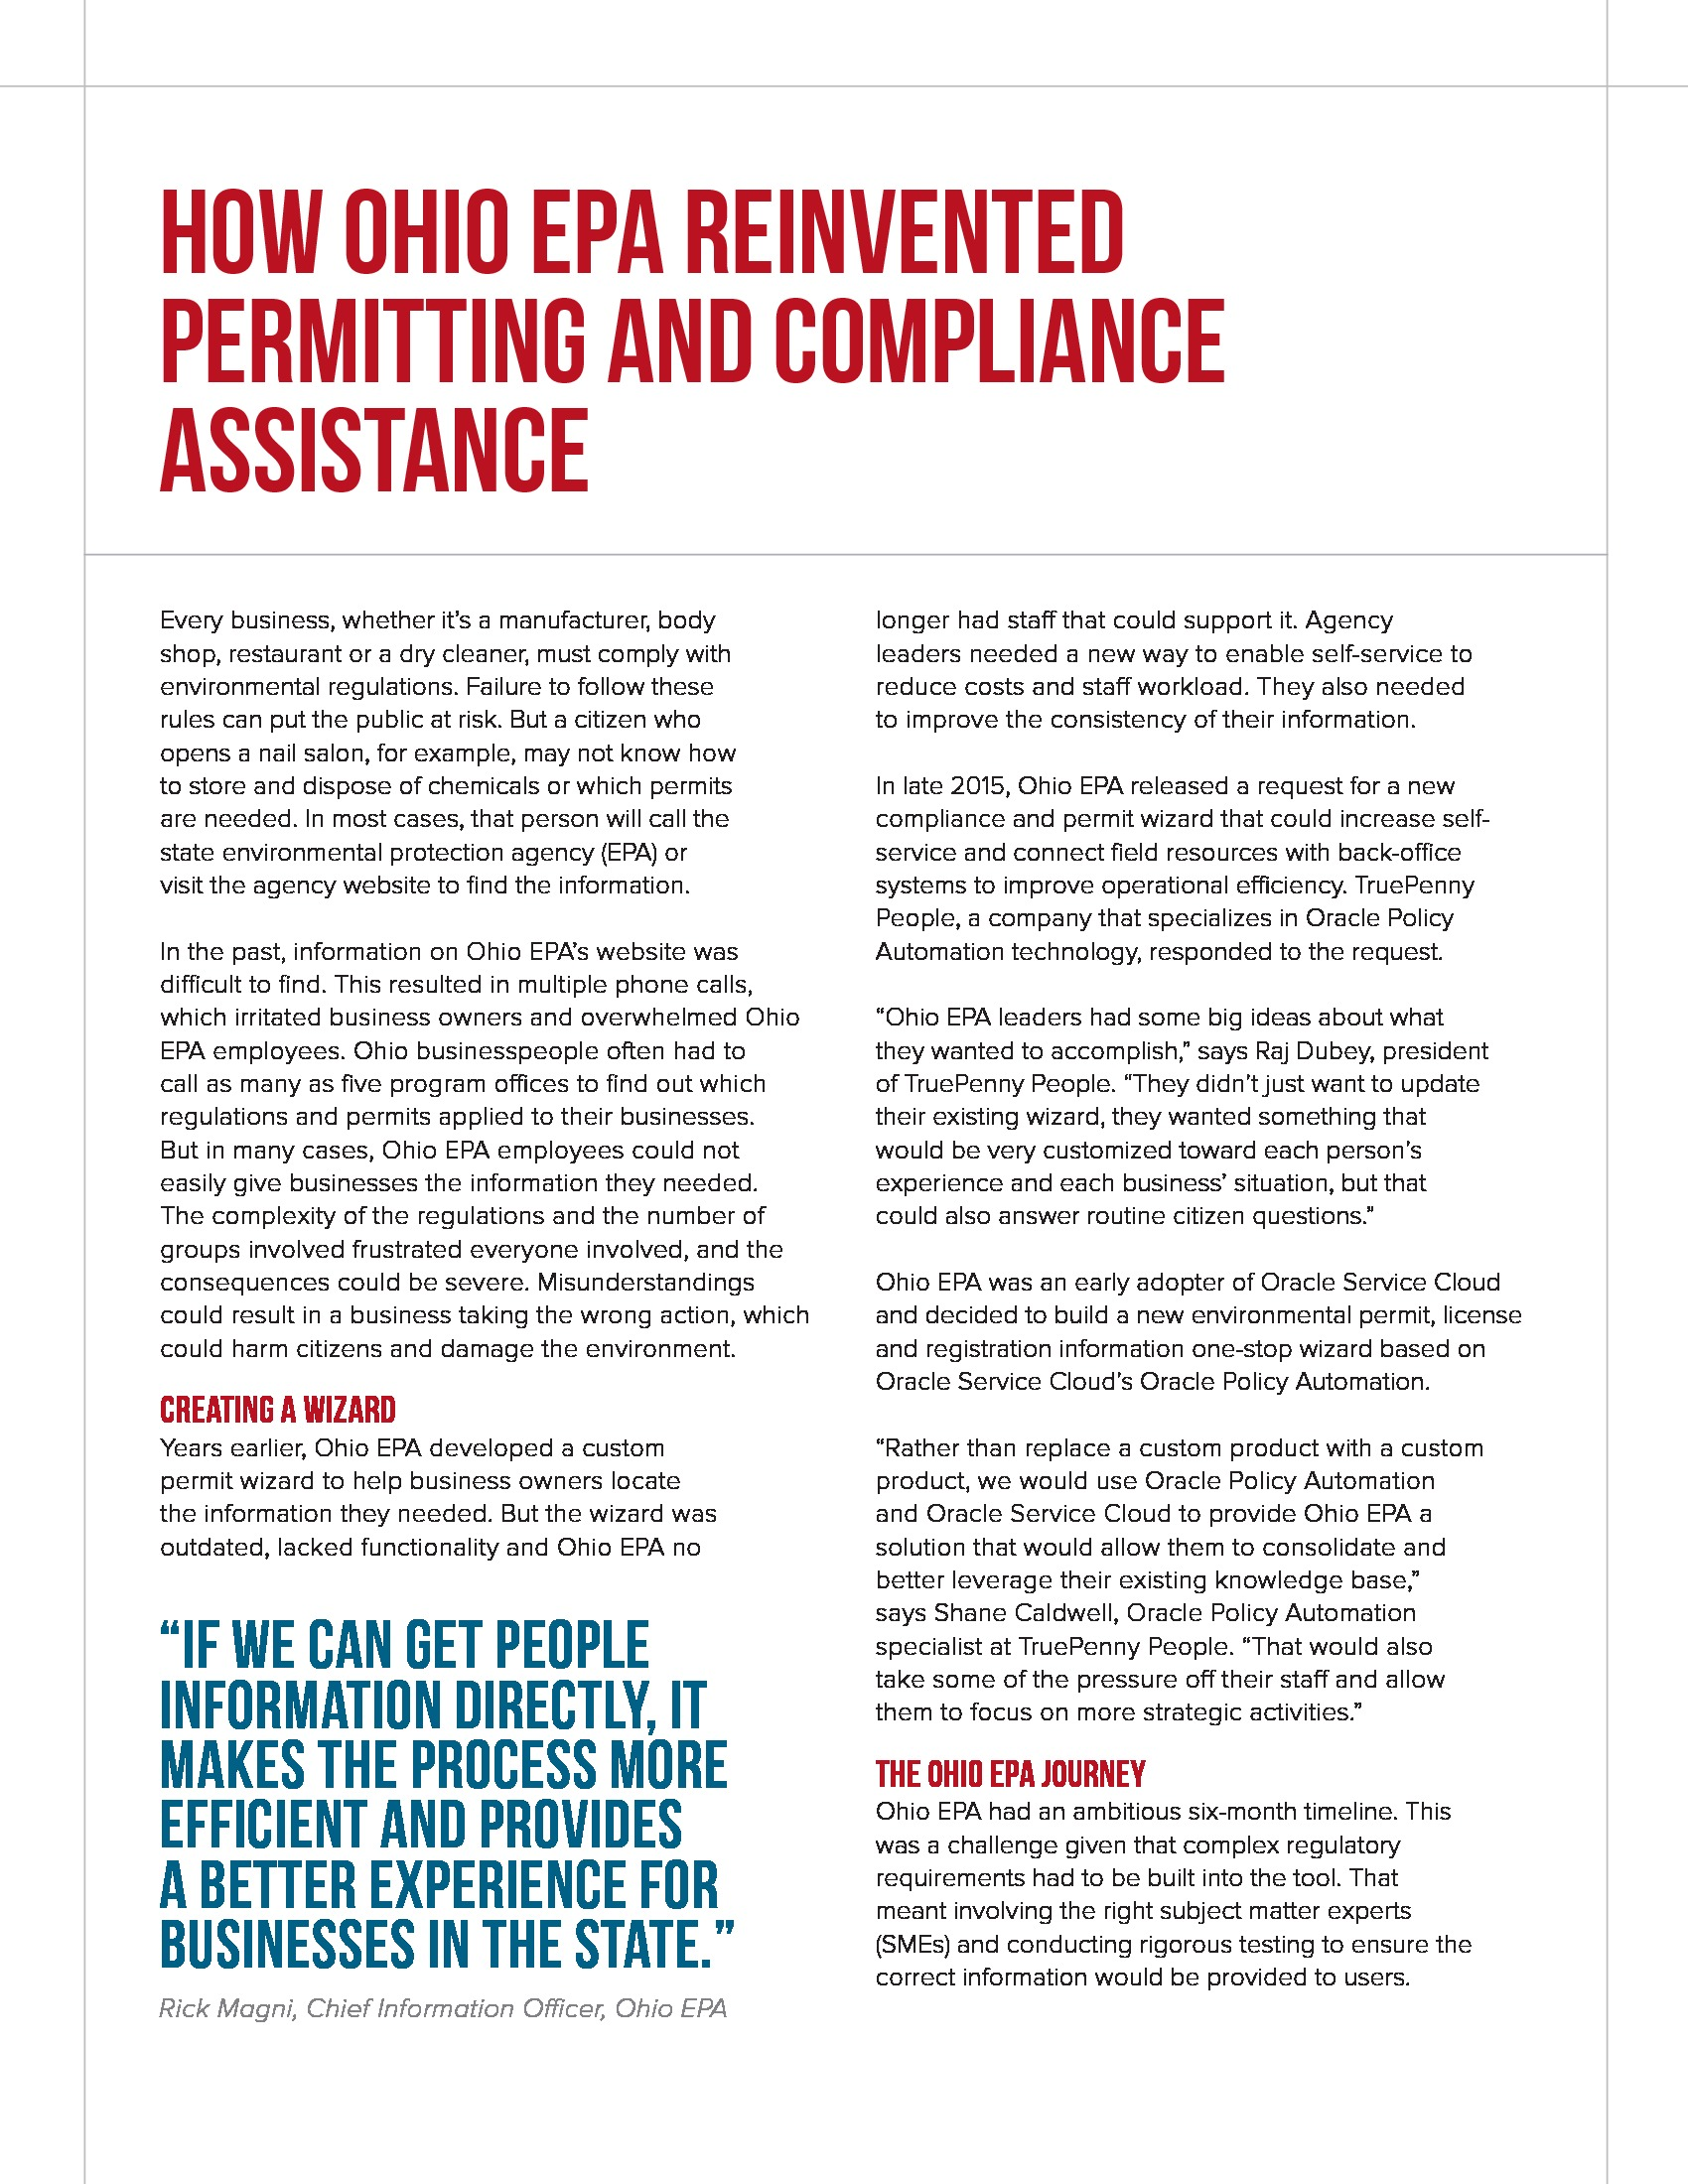 How Ohio EPA Reinvented Permitting and Compliance Assistance